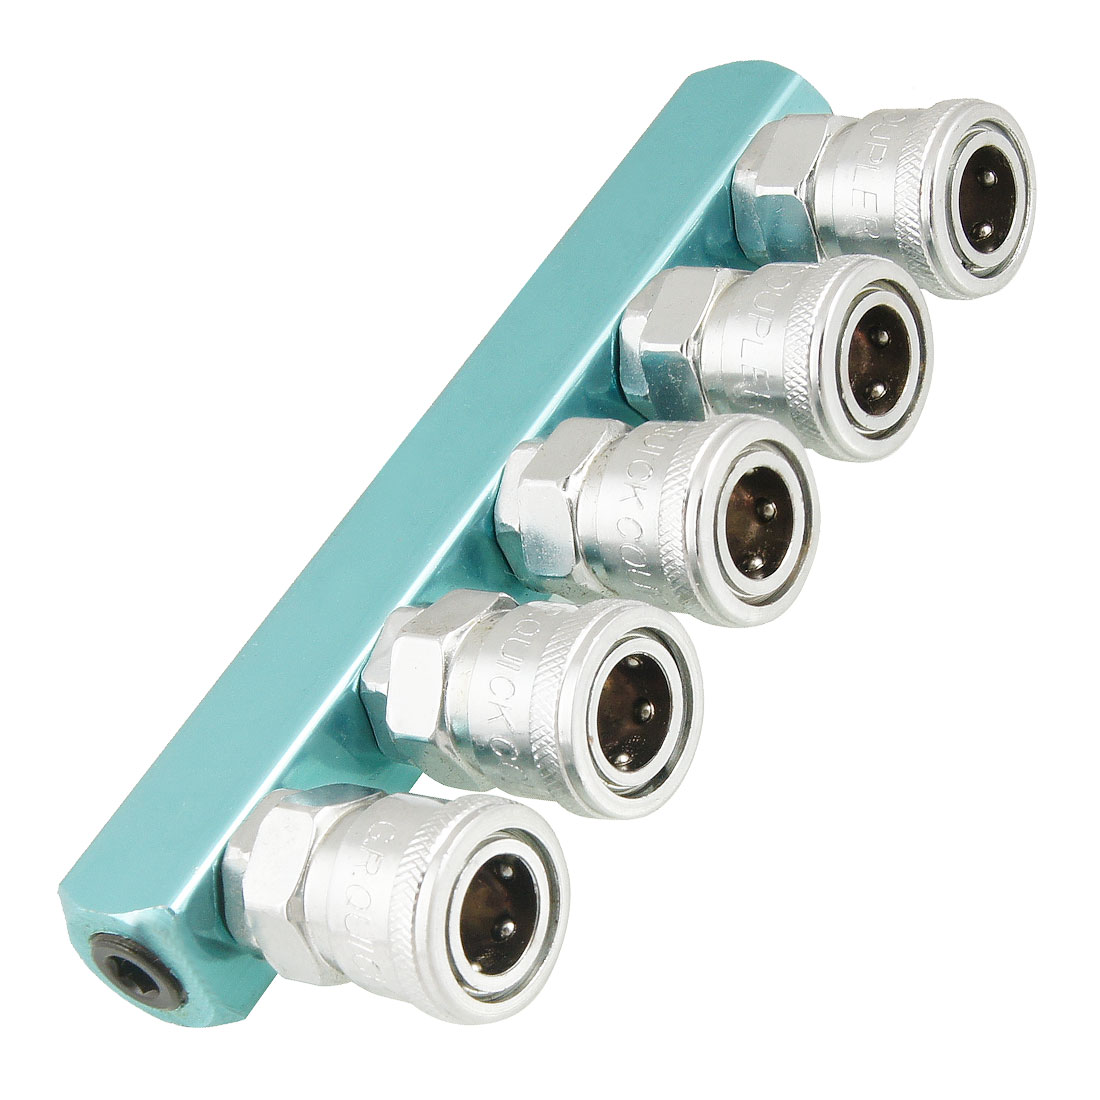 Silver Tone Sky Blue Piping Fitting 5 Way Air Hose Multi Pass Quick Coupler